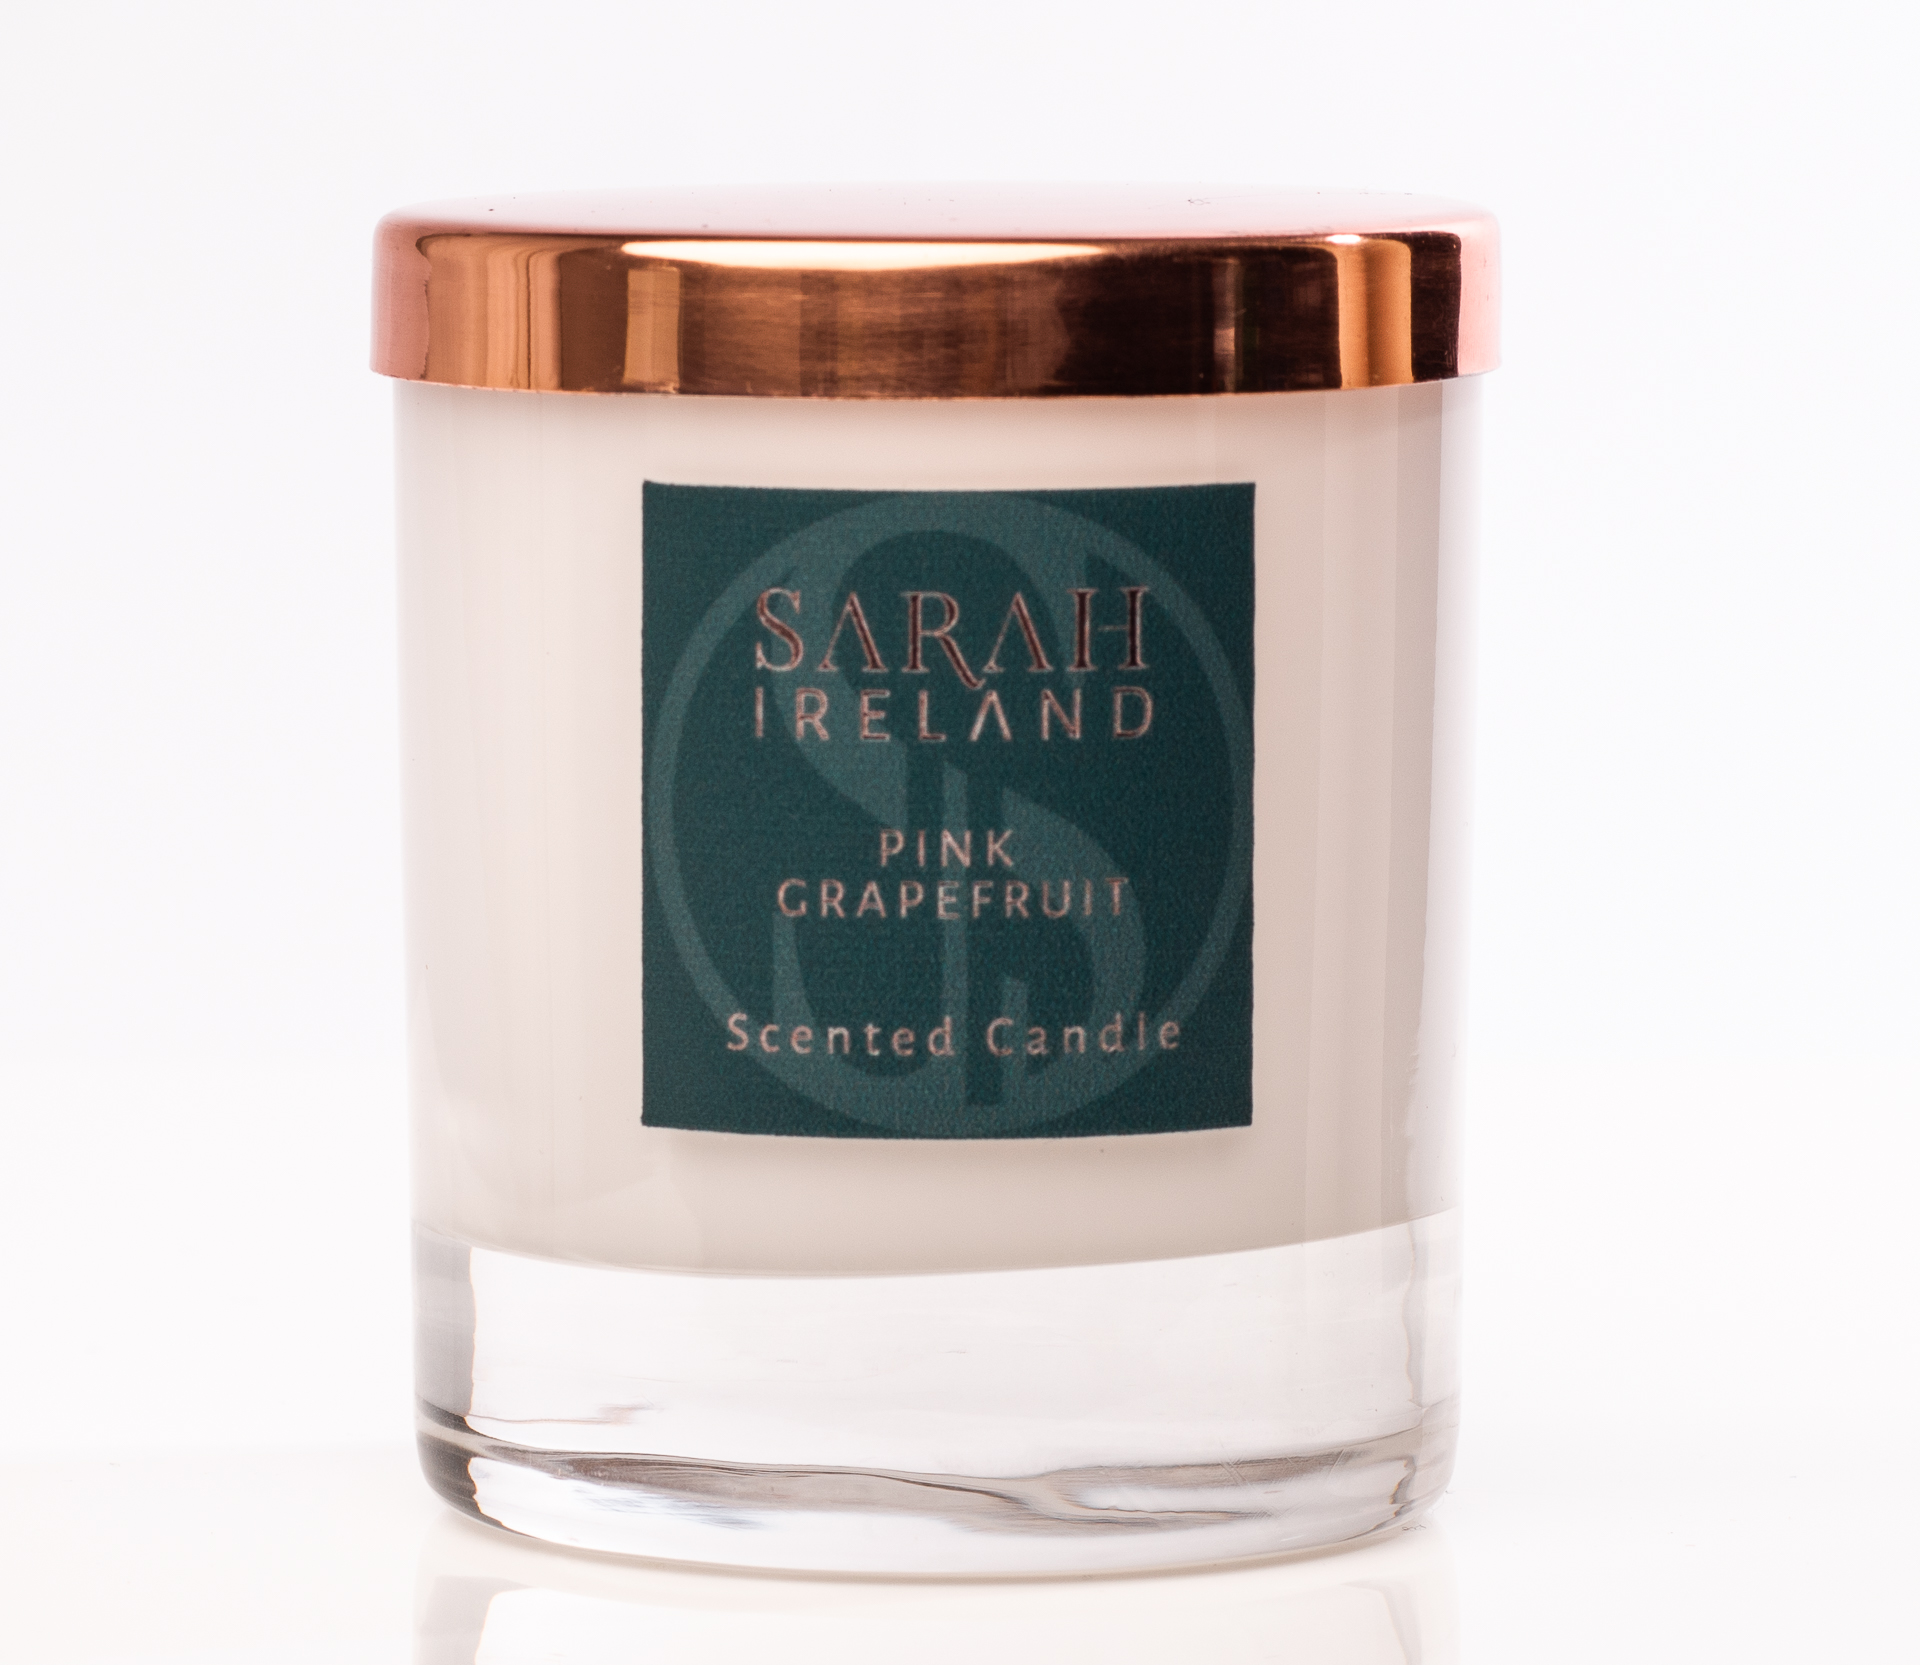 Pink Grapefruit Scented Candle